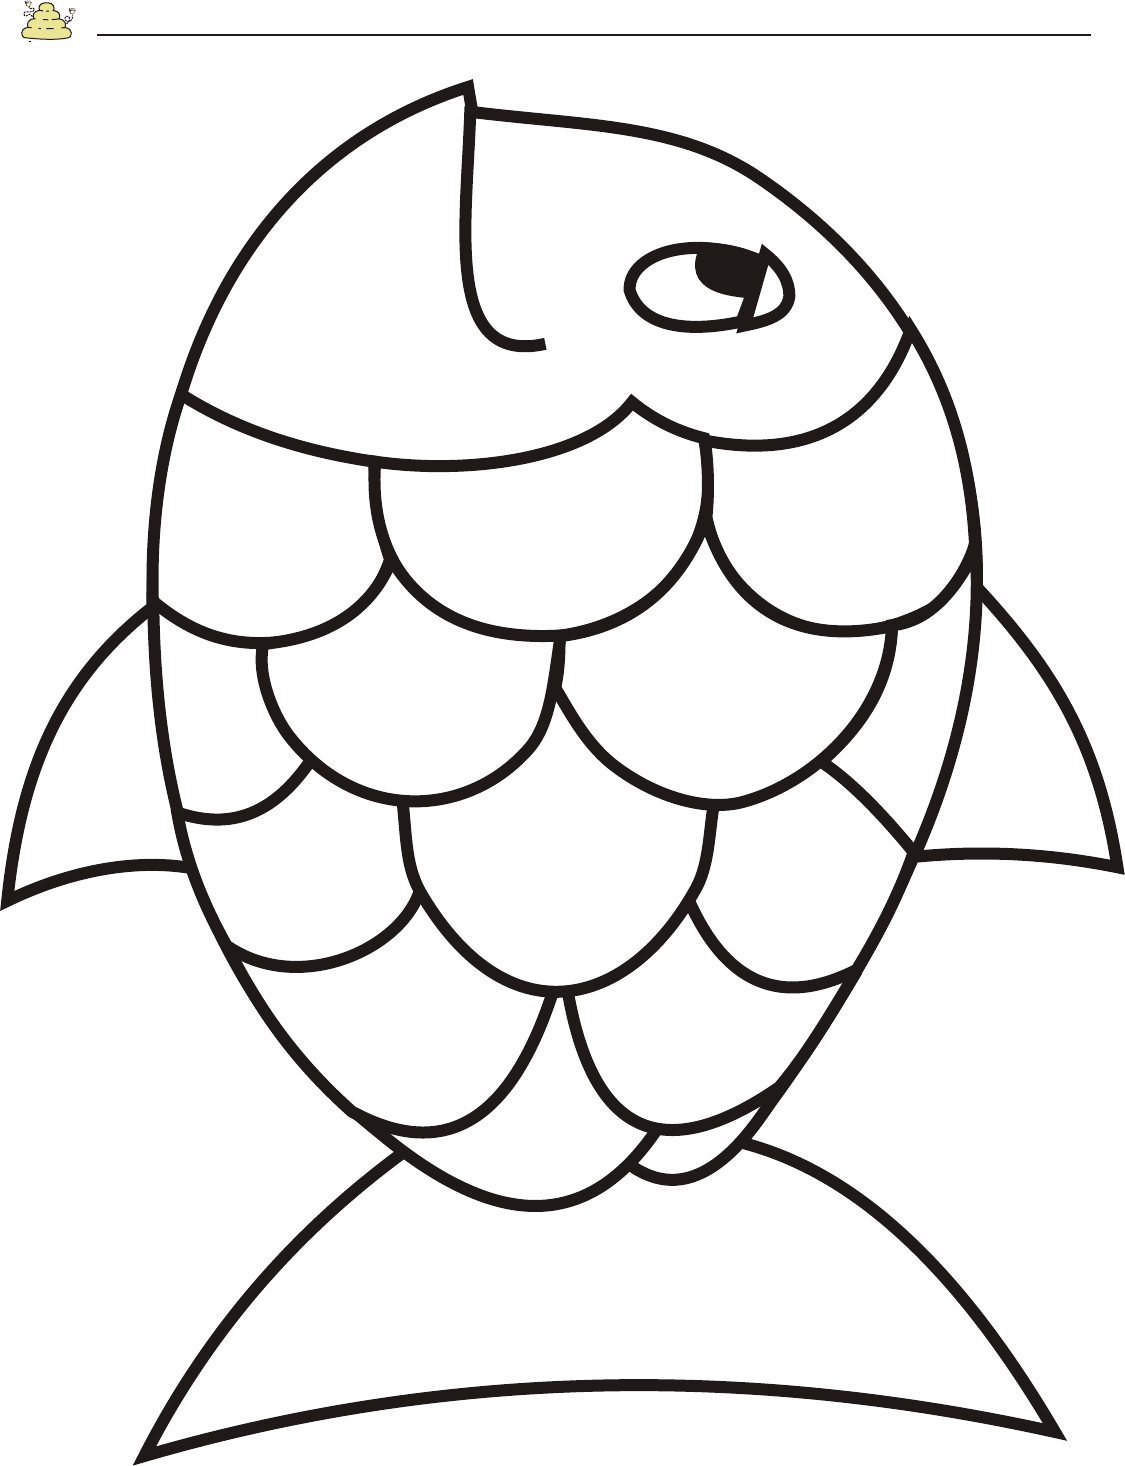 rainbow fish coloring page template rainbow fish template coloring page free printable template page rainbow fish coloring